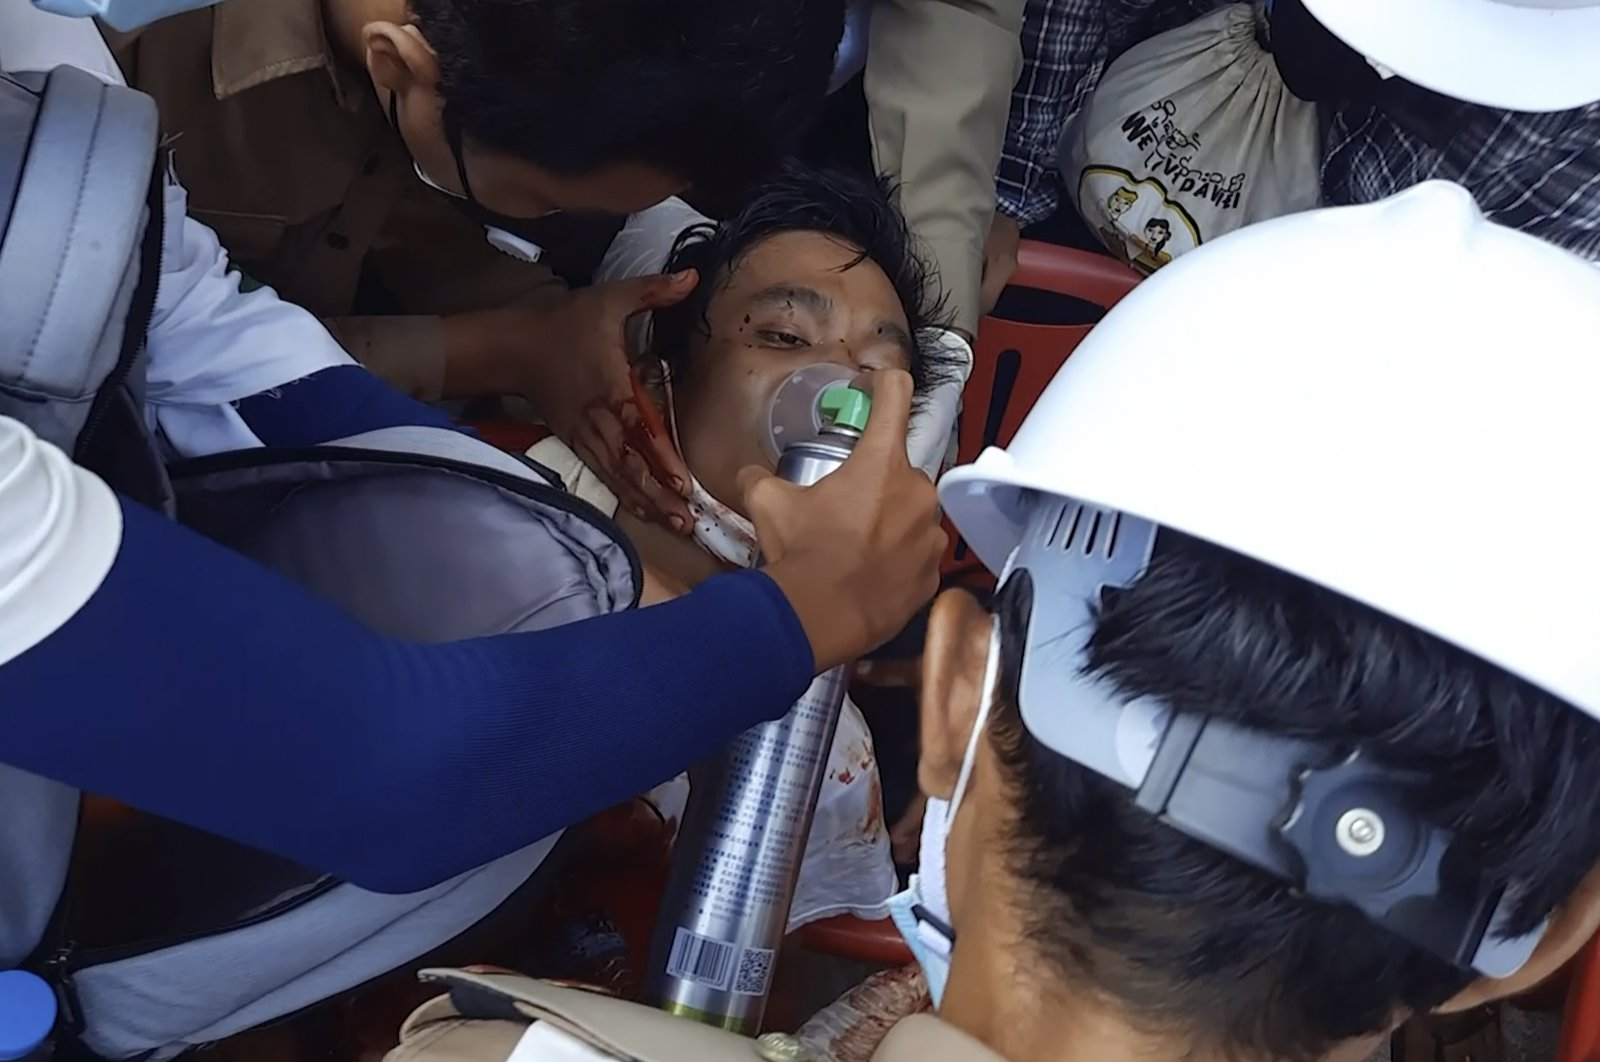 In this Sunday, Feb. 28, 2021 image from video provided by Dakkhina Insight, medics attend to a man who appeared to be wounded in his upper chest on a street in Dawei, Myanmar. (AP Photo)